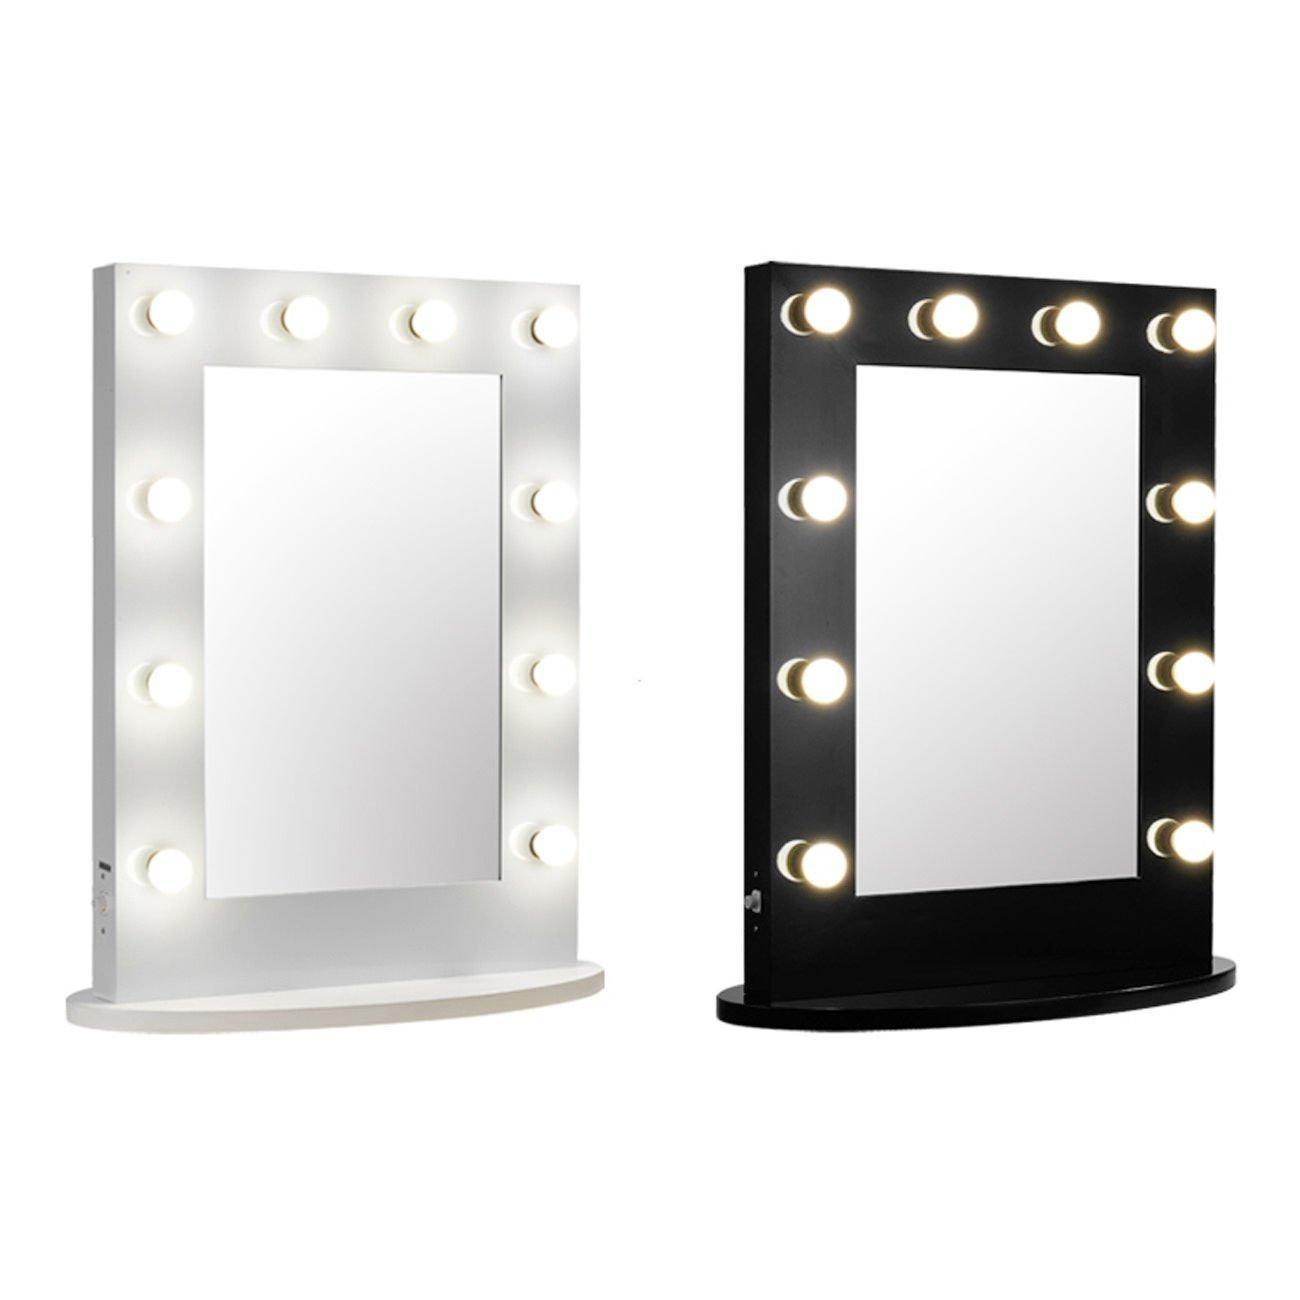 Wall Mounted Disco Lights : How to install Makeup mirror with lights wall mounted Warisan Lighting